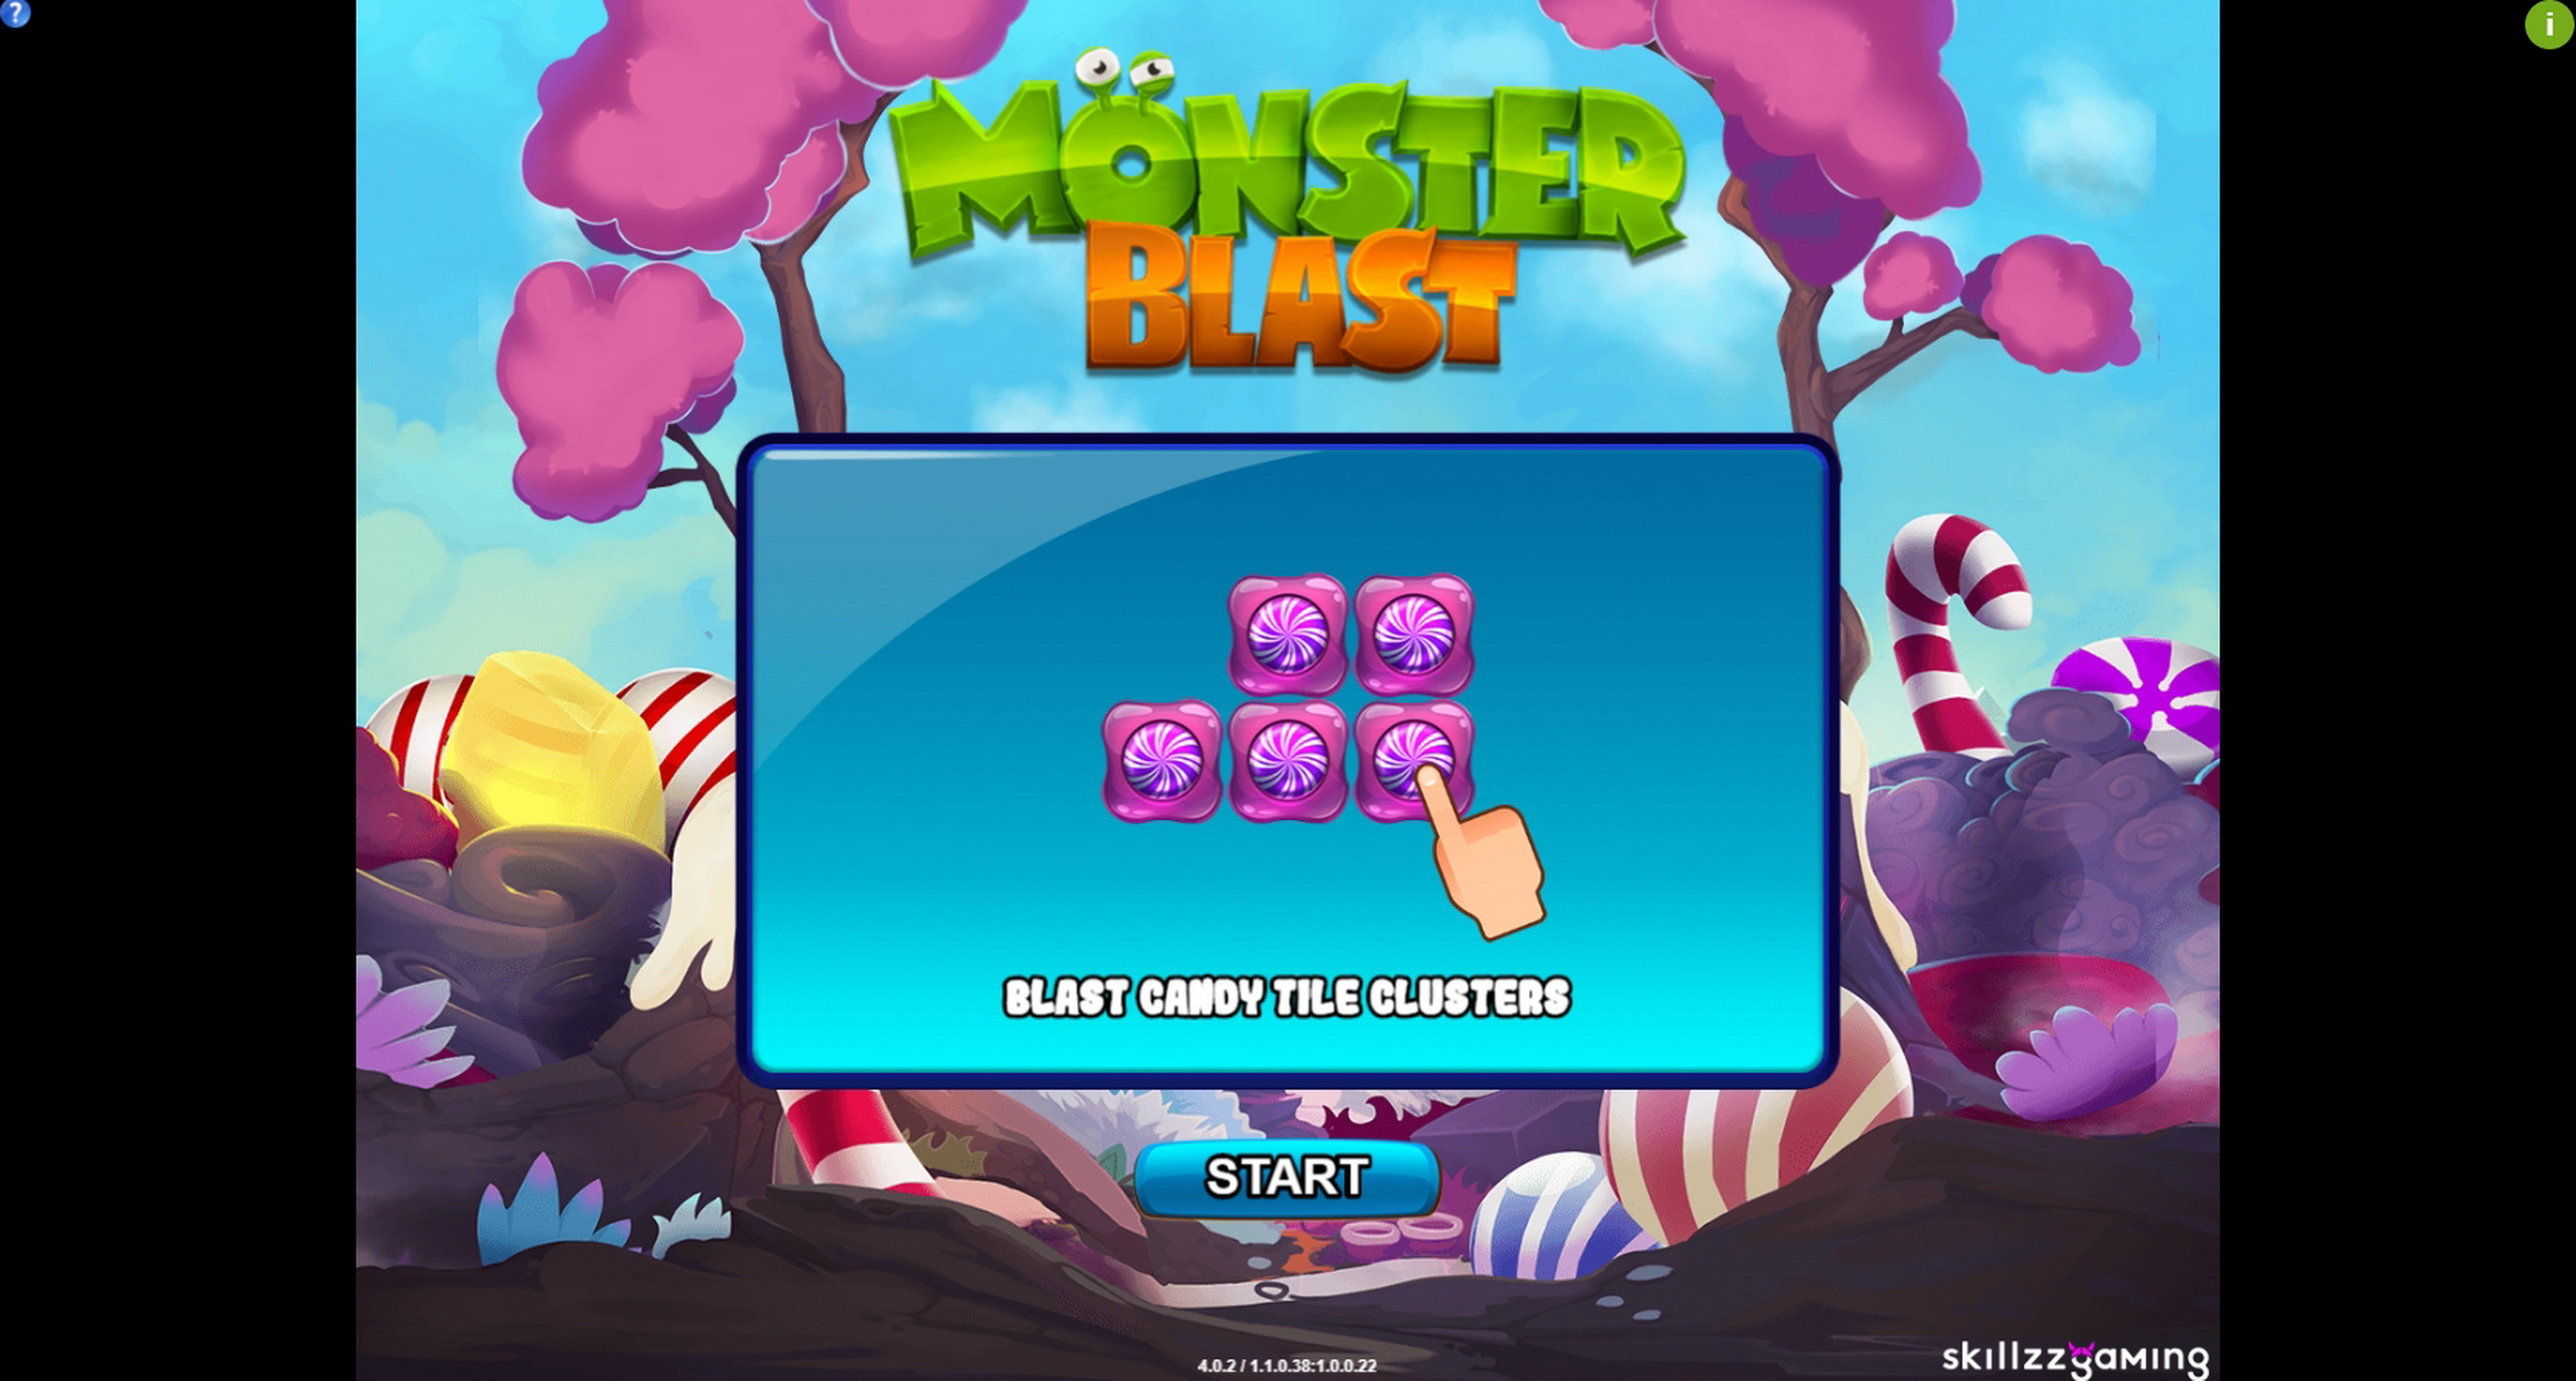 Play Monster Blast Free Casino Slot Game by Skillzzgaming